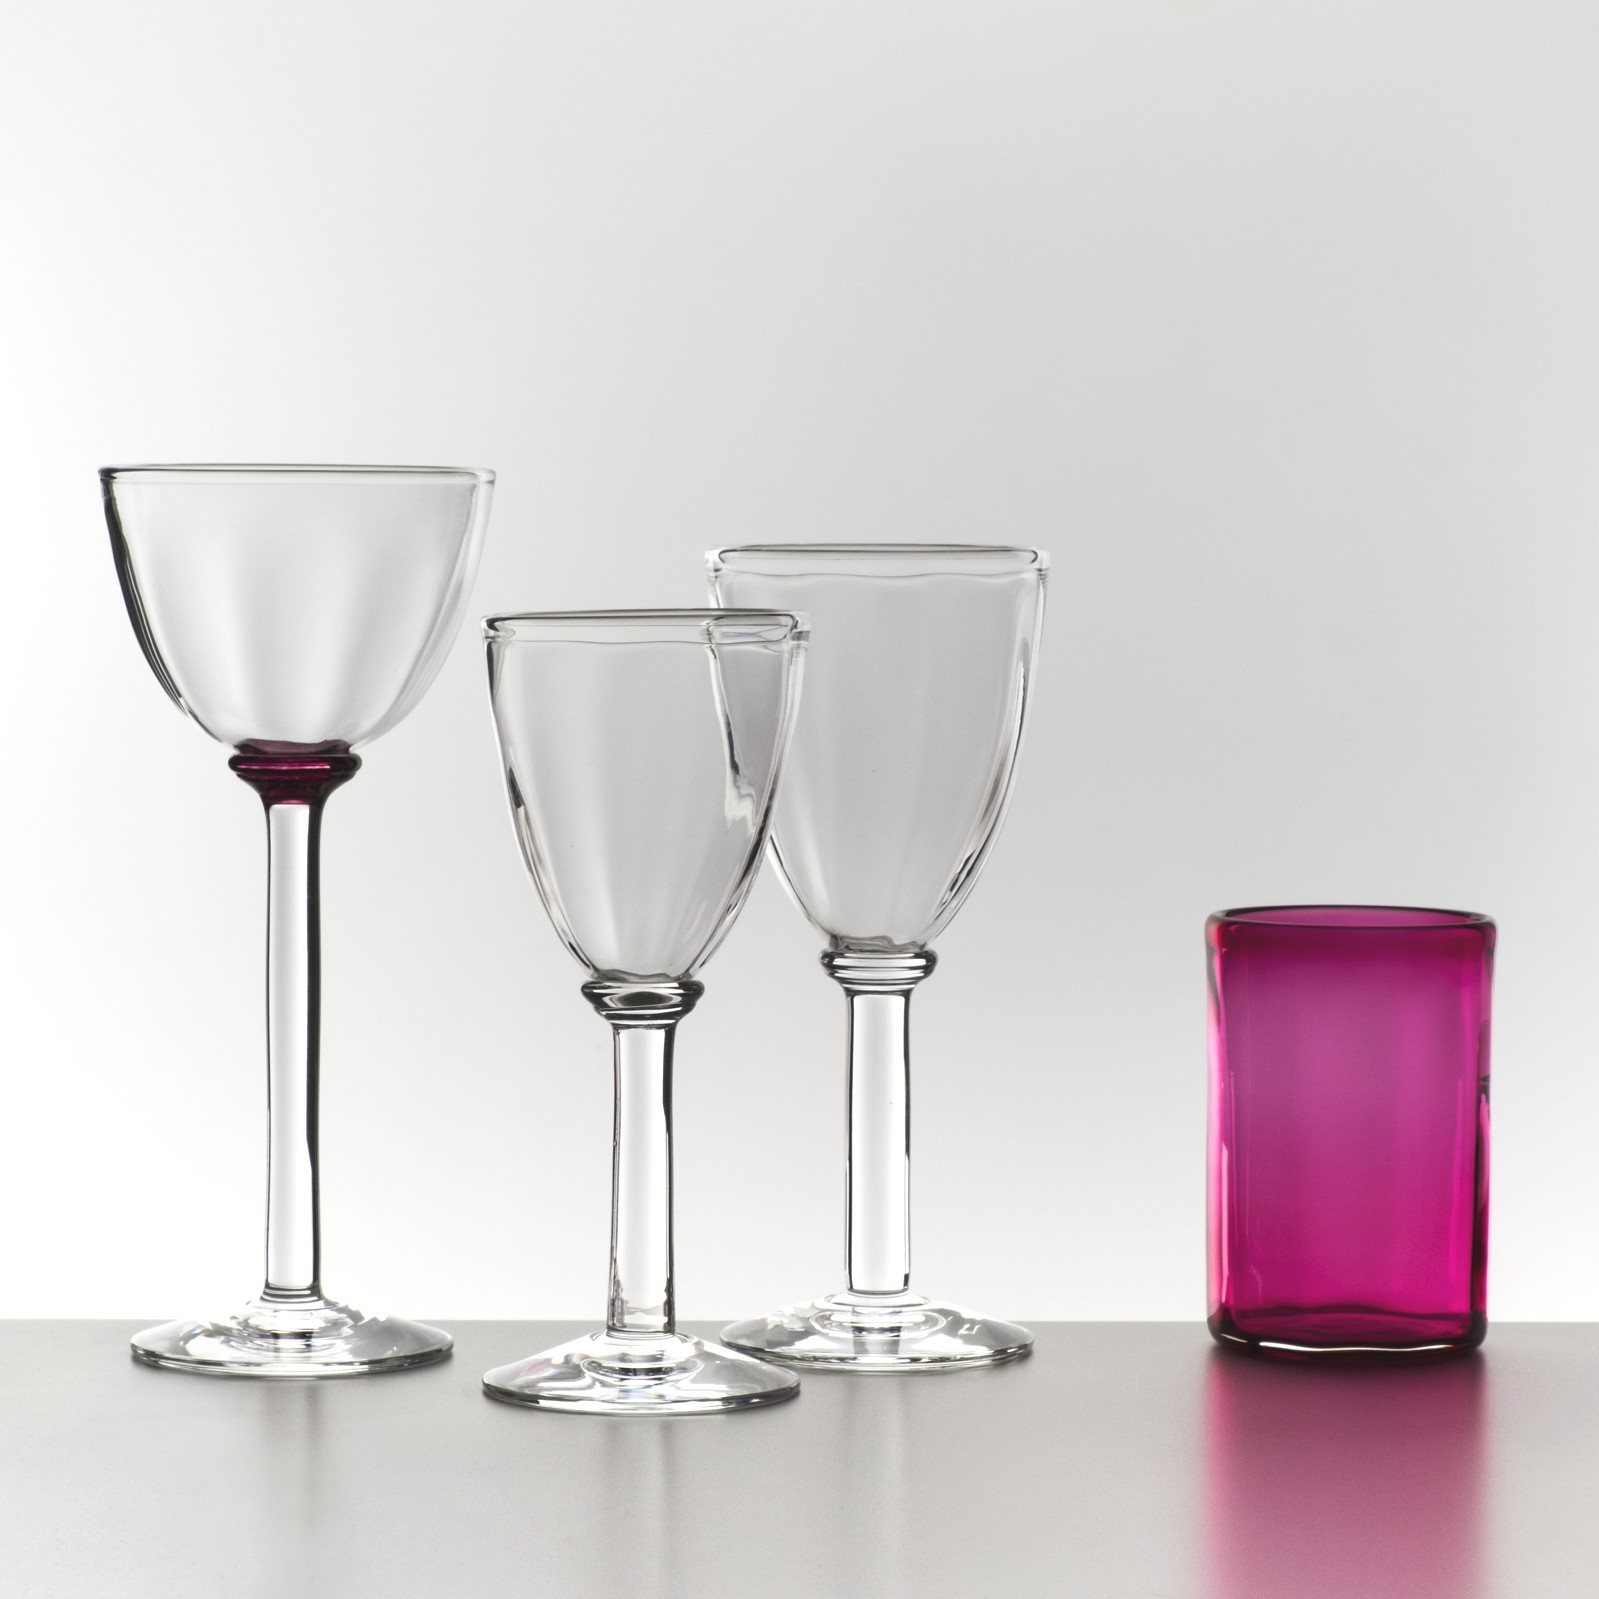 LindeanMillGlass Optic Carafe wine glasses and Colour Tumblers